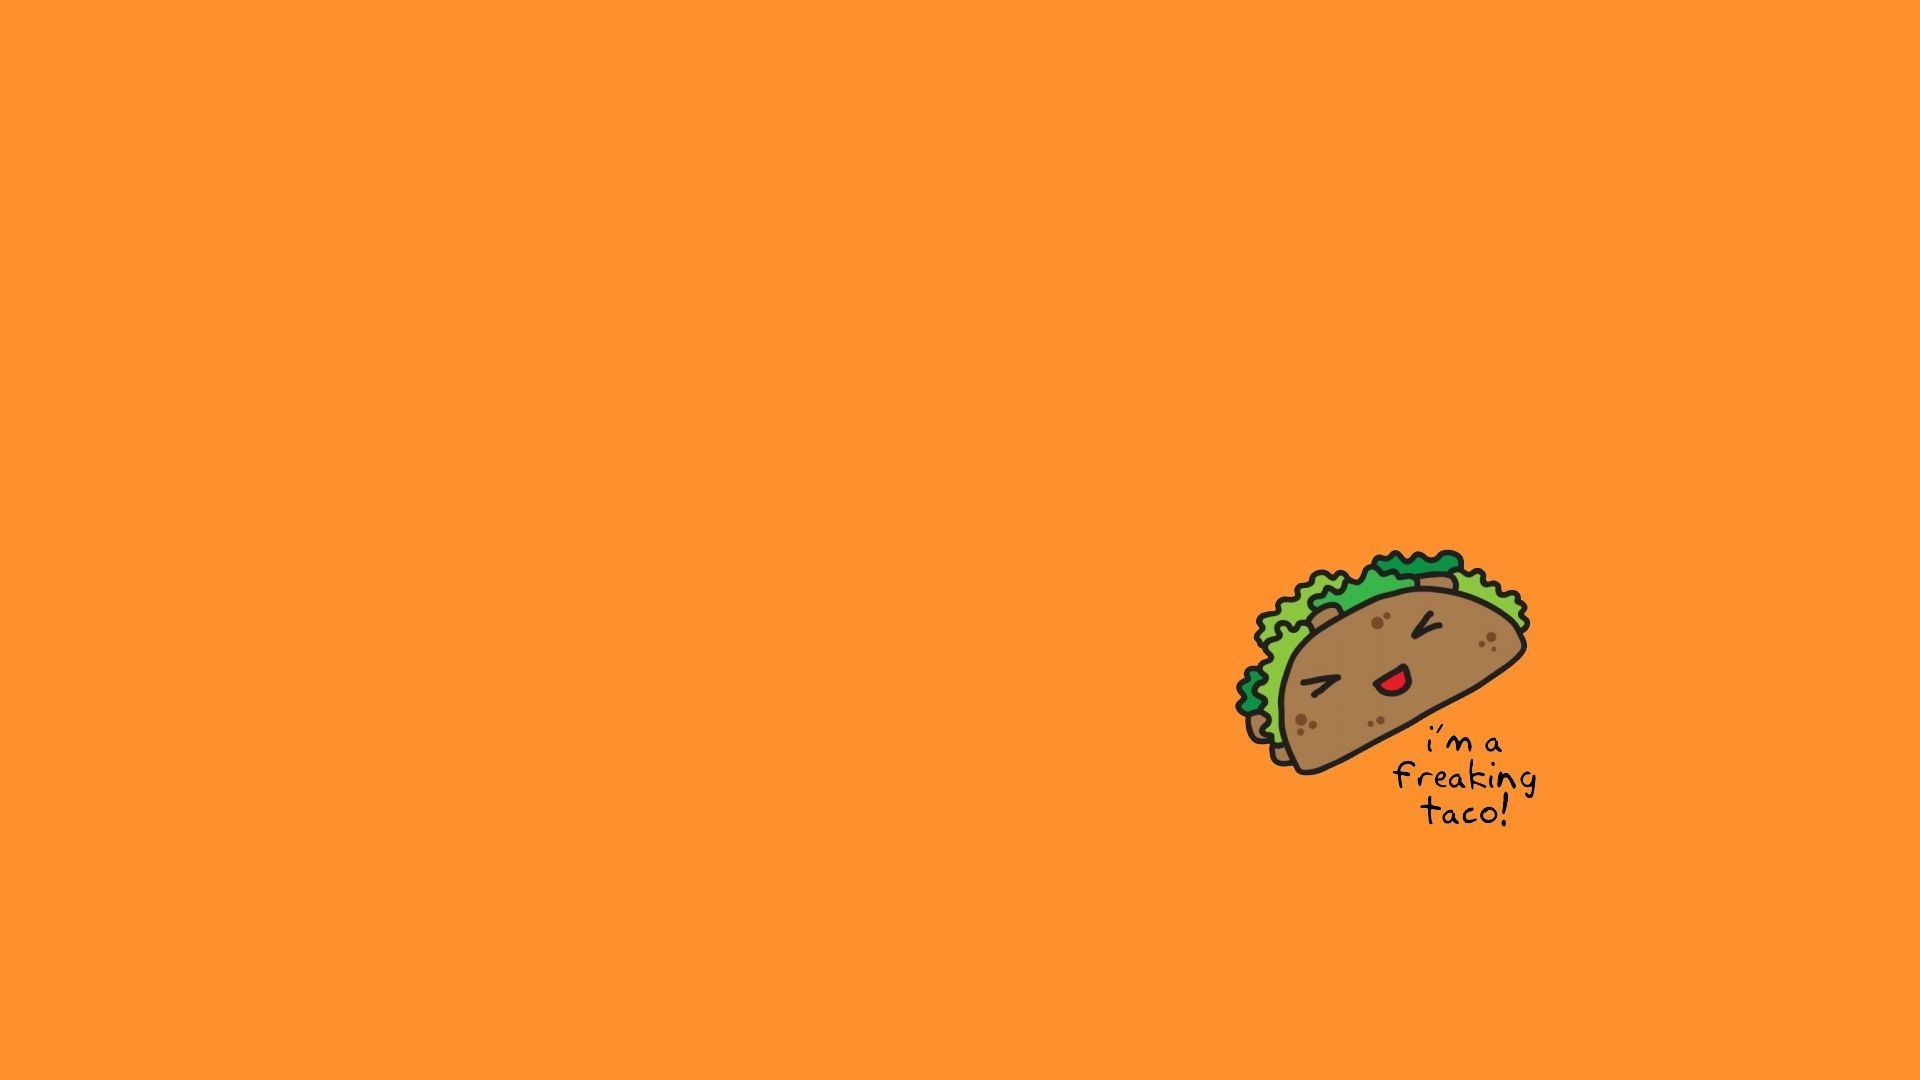 The Many Uses of taco Wallpaper designs